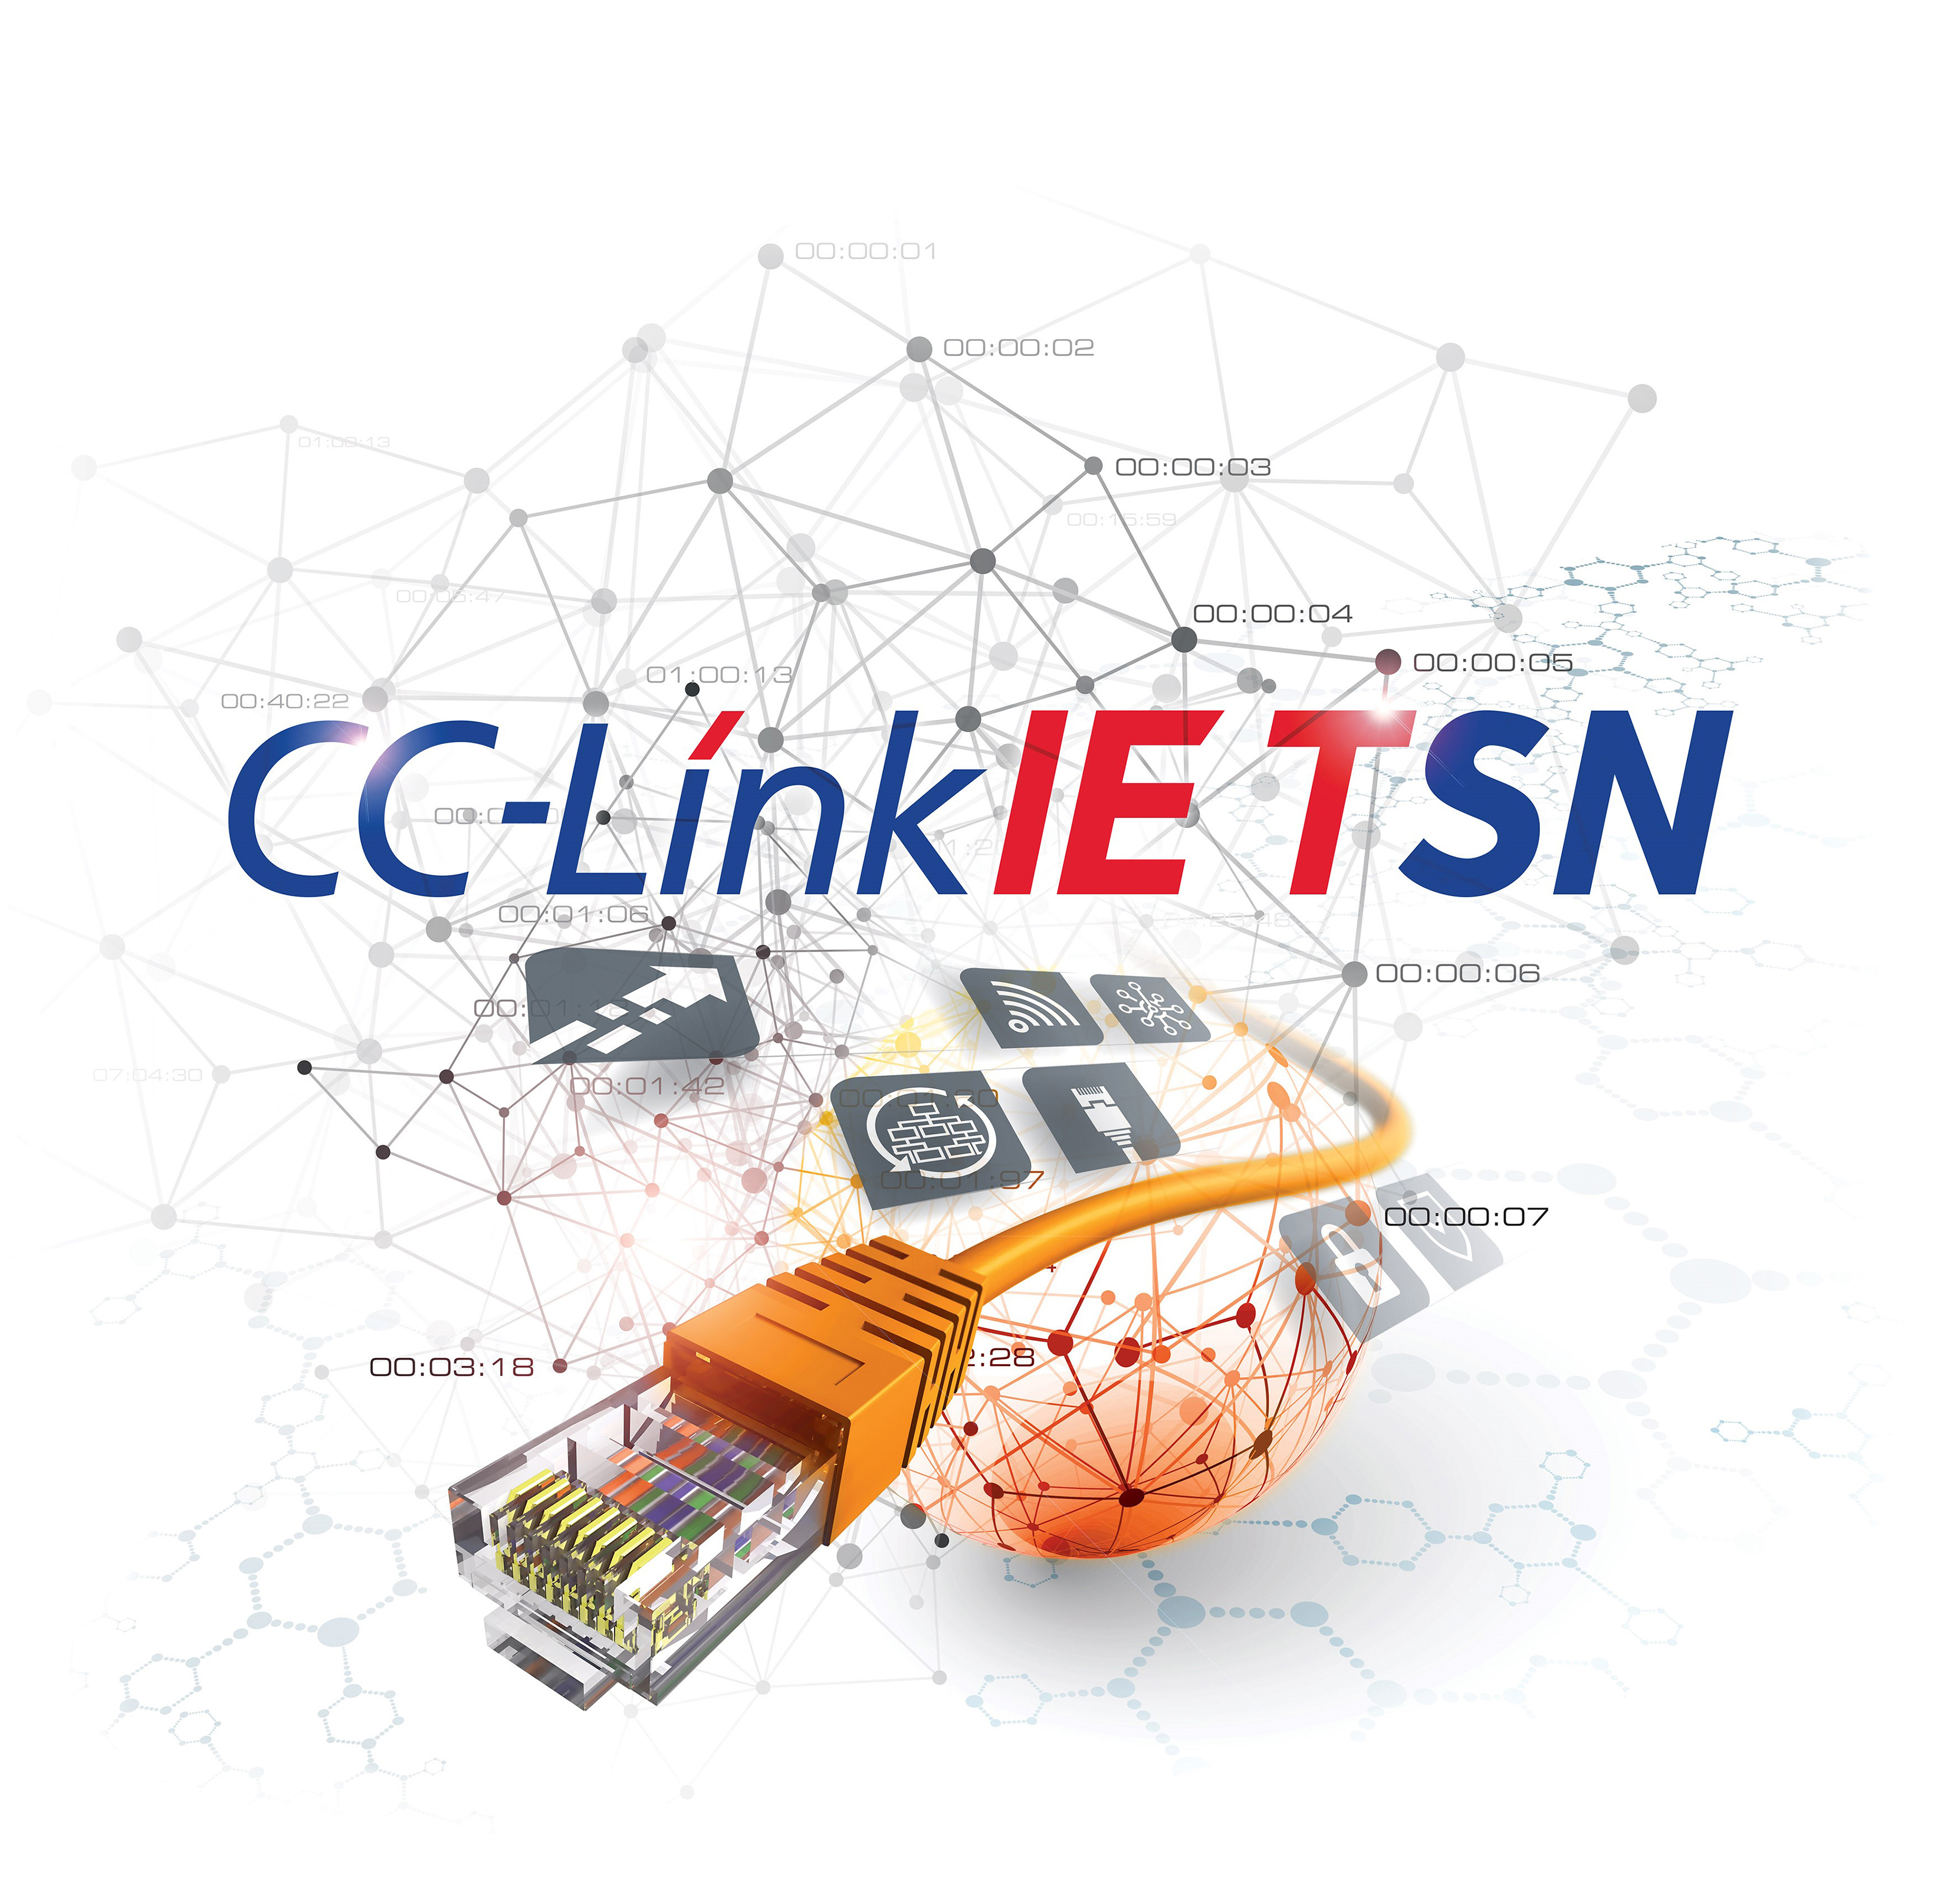 The CLPA debuts at the Hannover Messe with CC-Link IE TSN